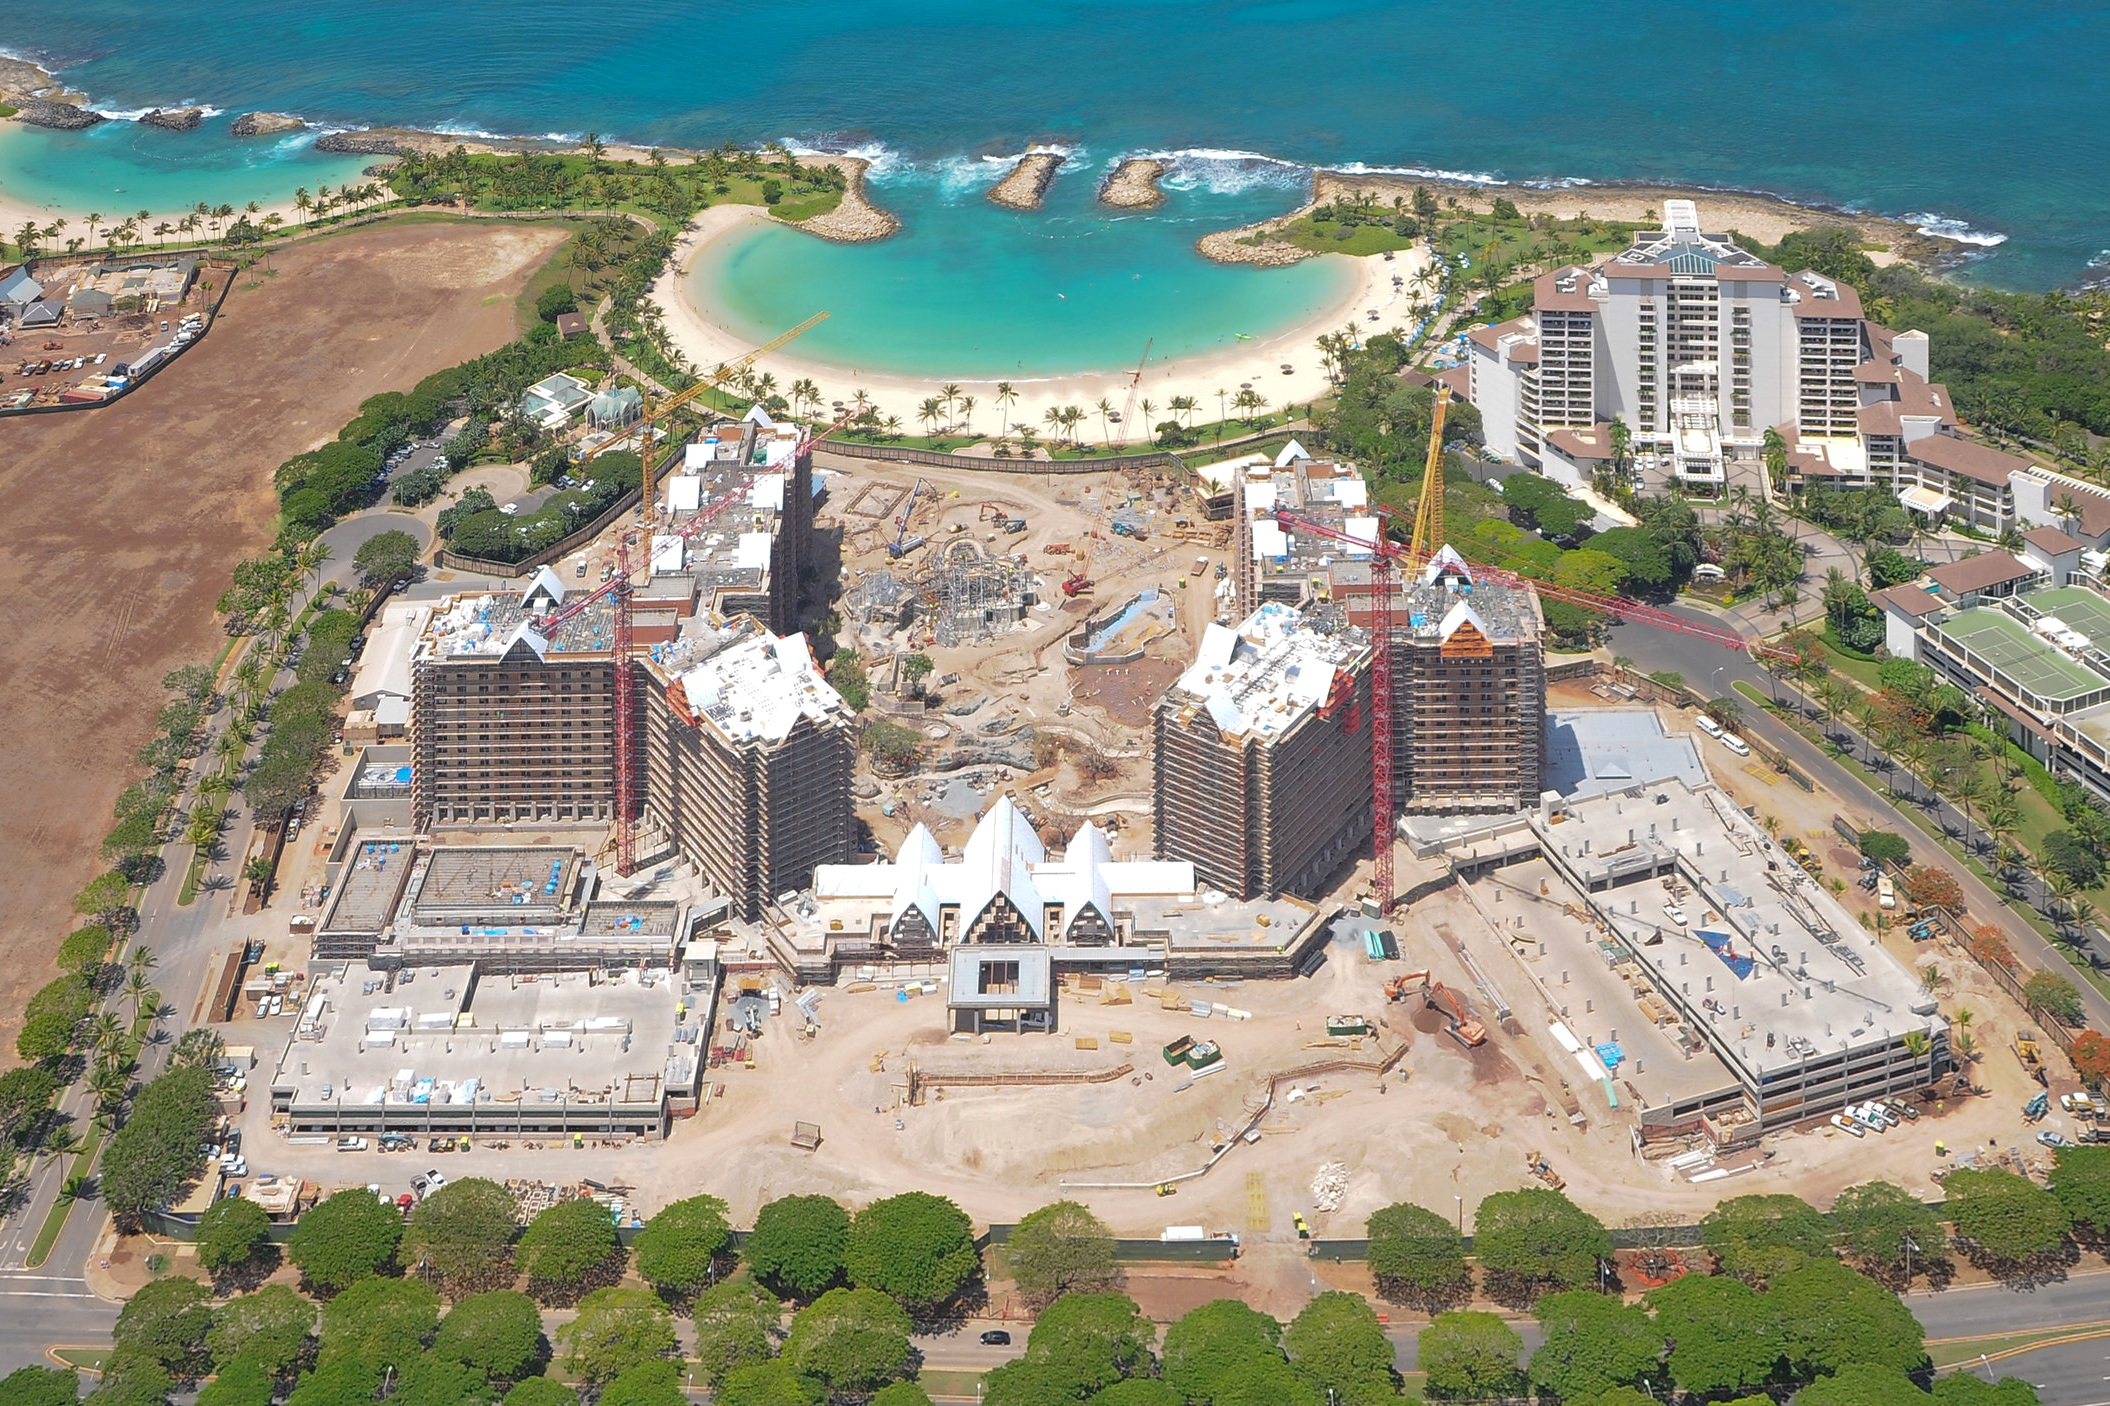 DISNEY'S AULANI RESORT AND SPA PARKING STRUCTURES - KoOlina, Oahu, HIA five story and a three story post-tensioned concrete parking structure for a total of 850 cars.